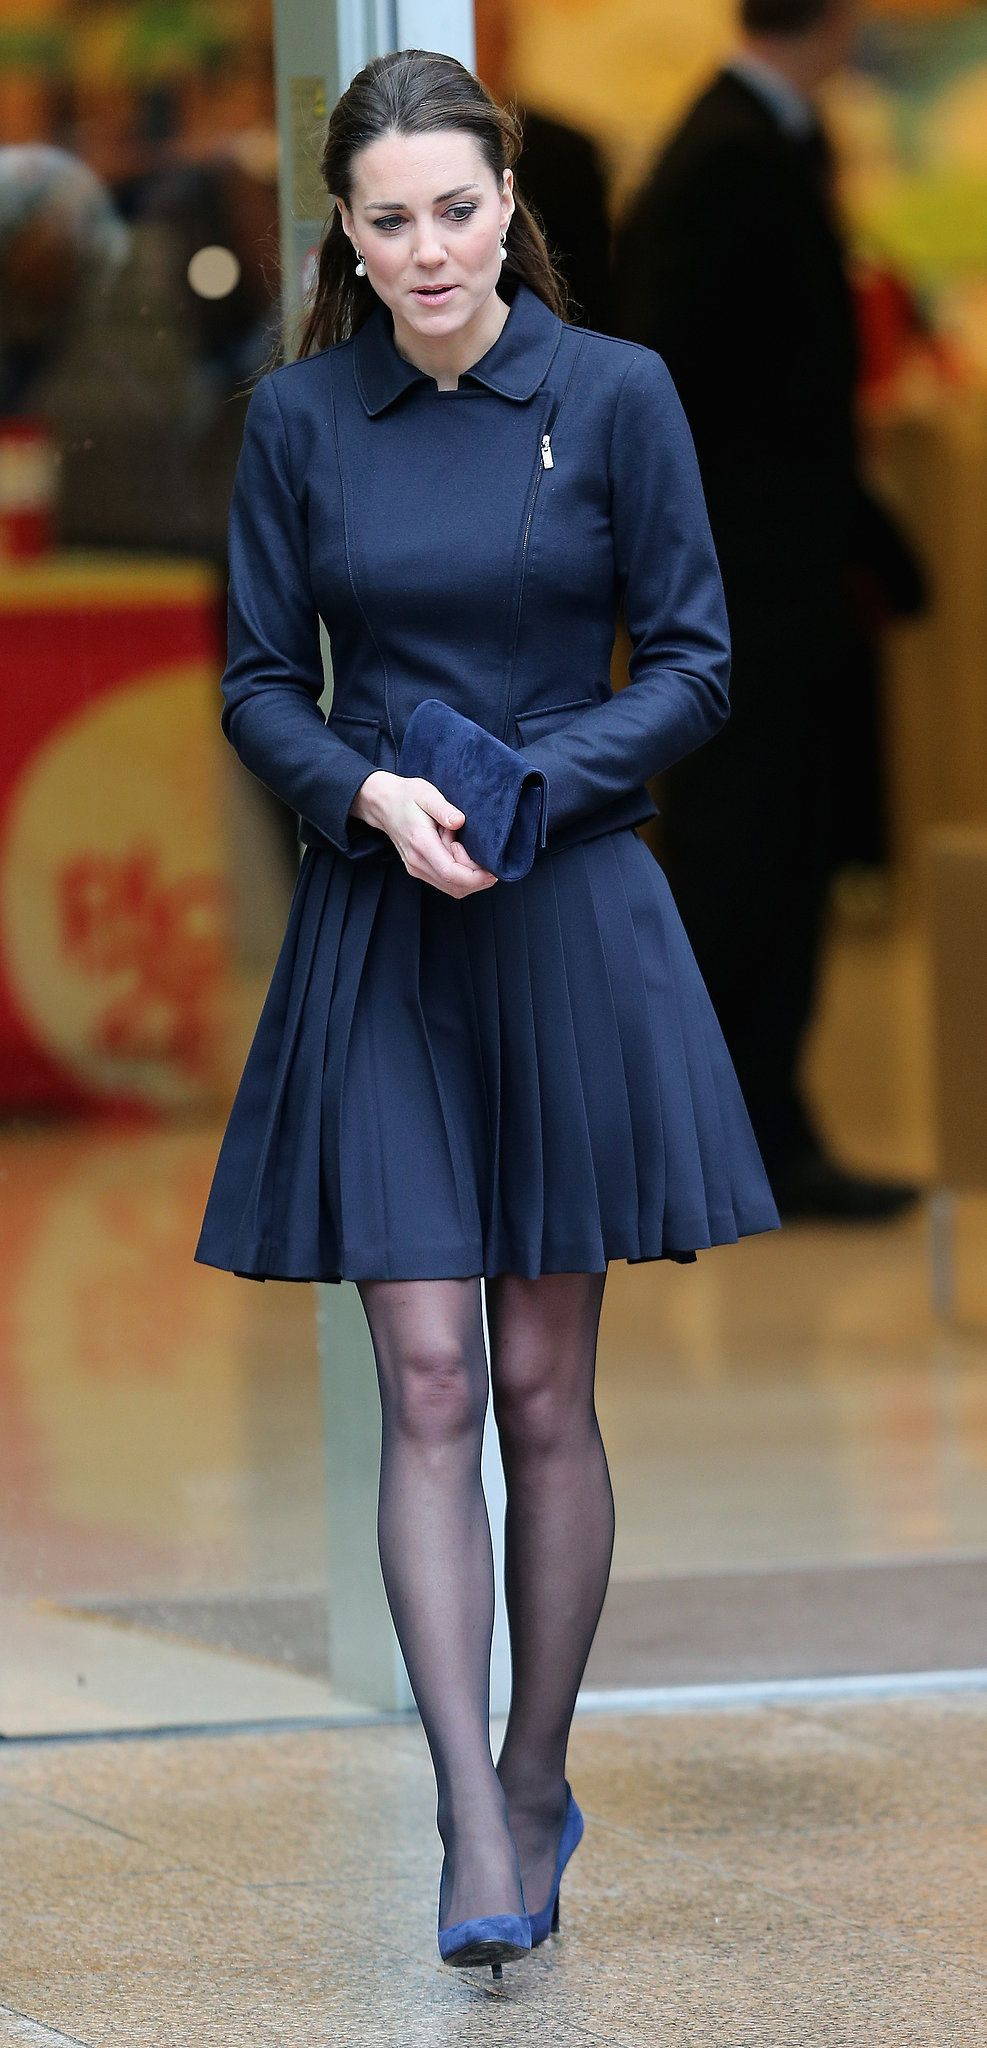 For A London Forum The Ss Put On Her Best Professional Attire Pleated Dress With Sheer Black Atching Blue Suede Accessories